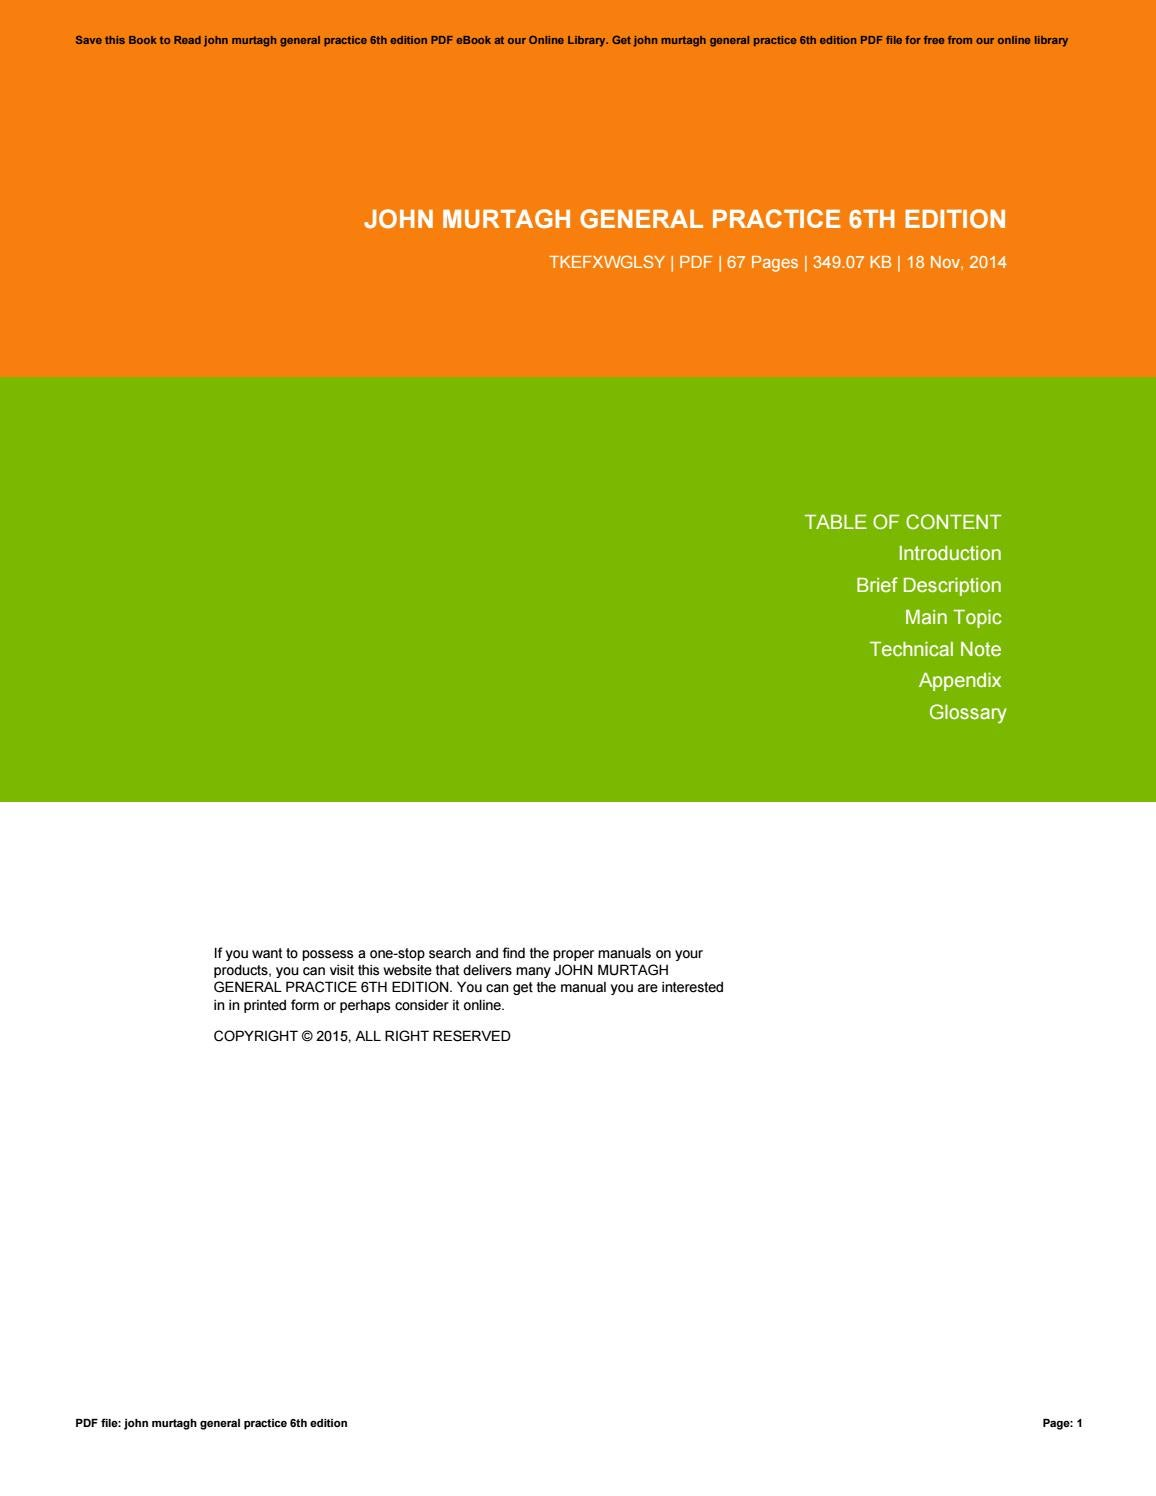 Murtagh General Practice Pdf